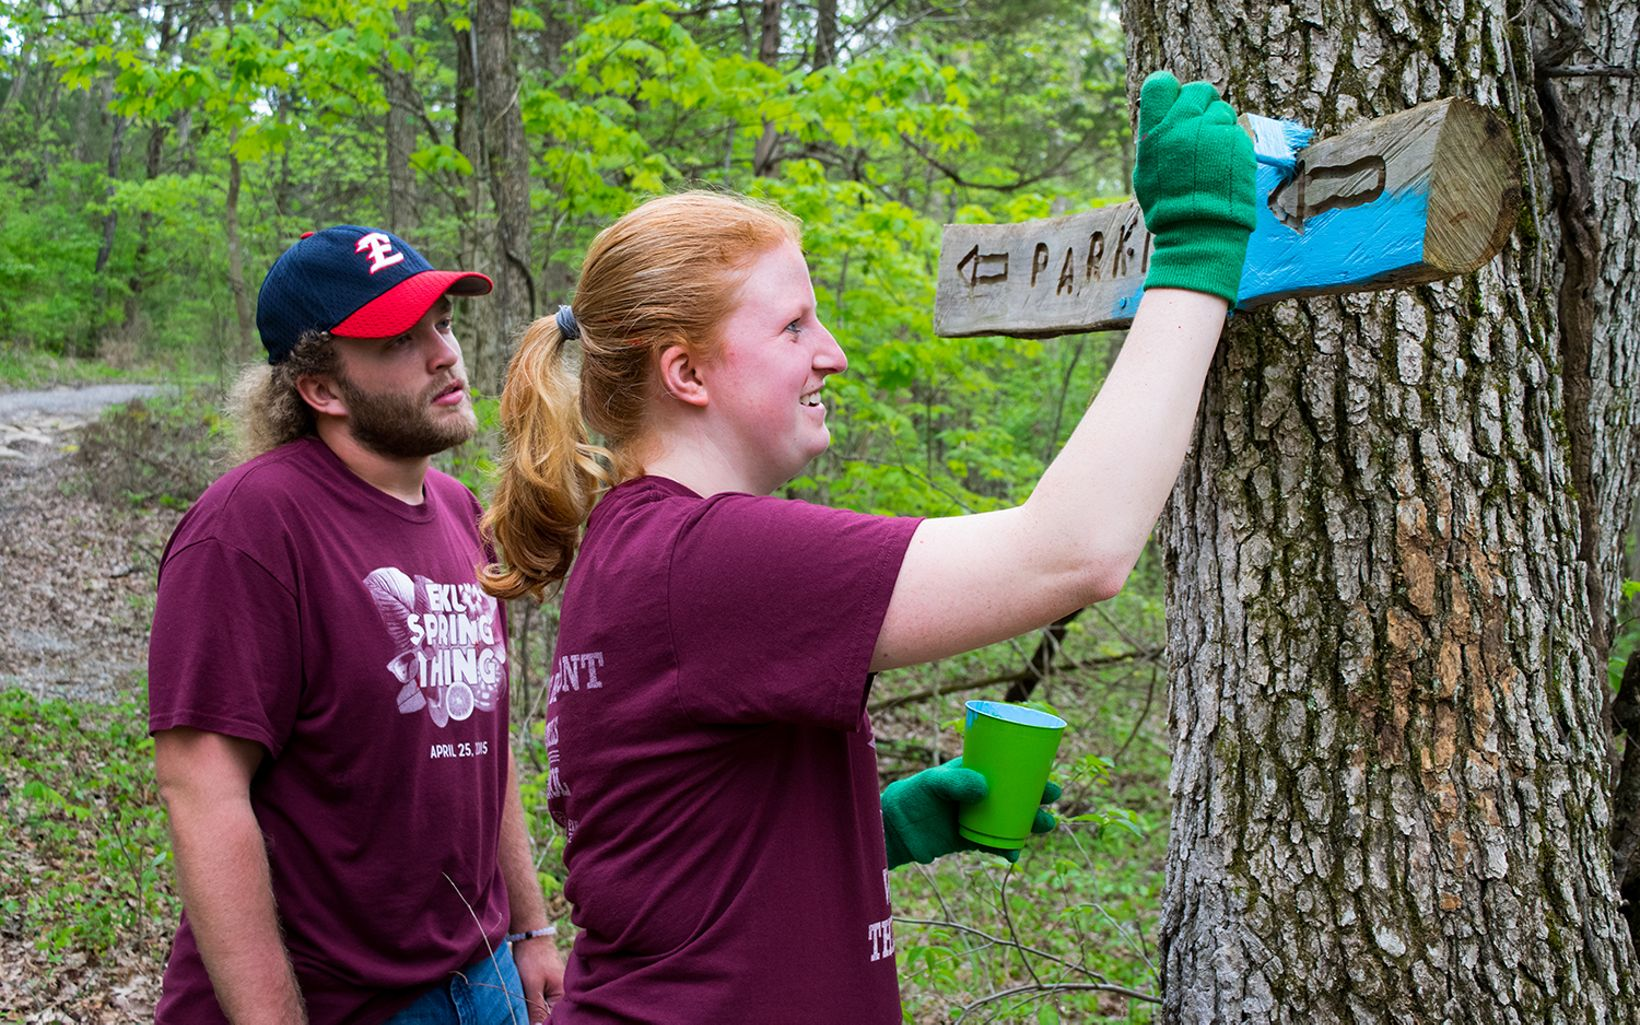 Volunteers paint a Parking sign blue attached to a tree.